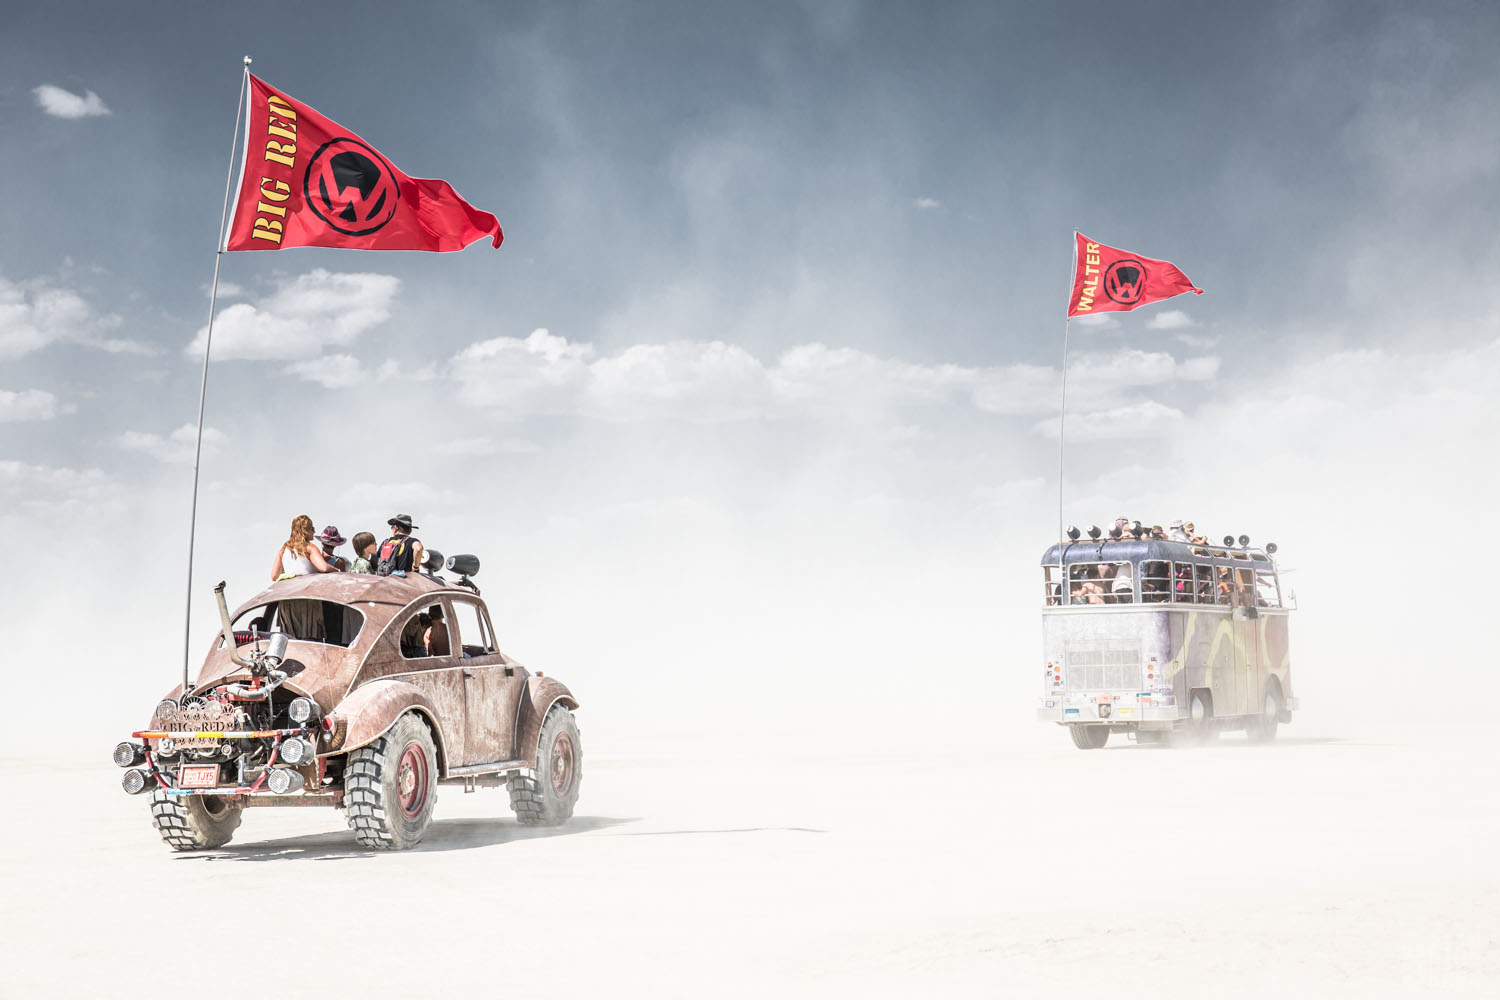 THE ROUTE TO BURNING MAN